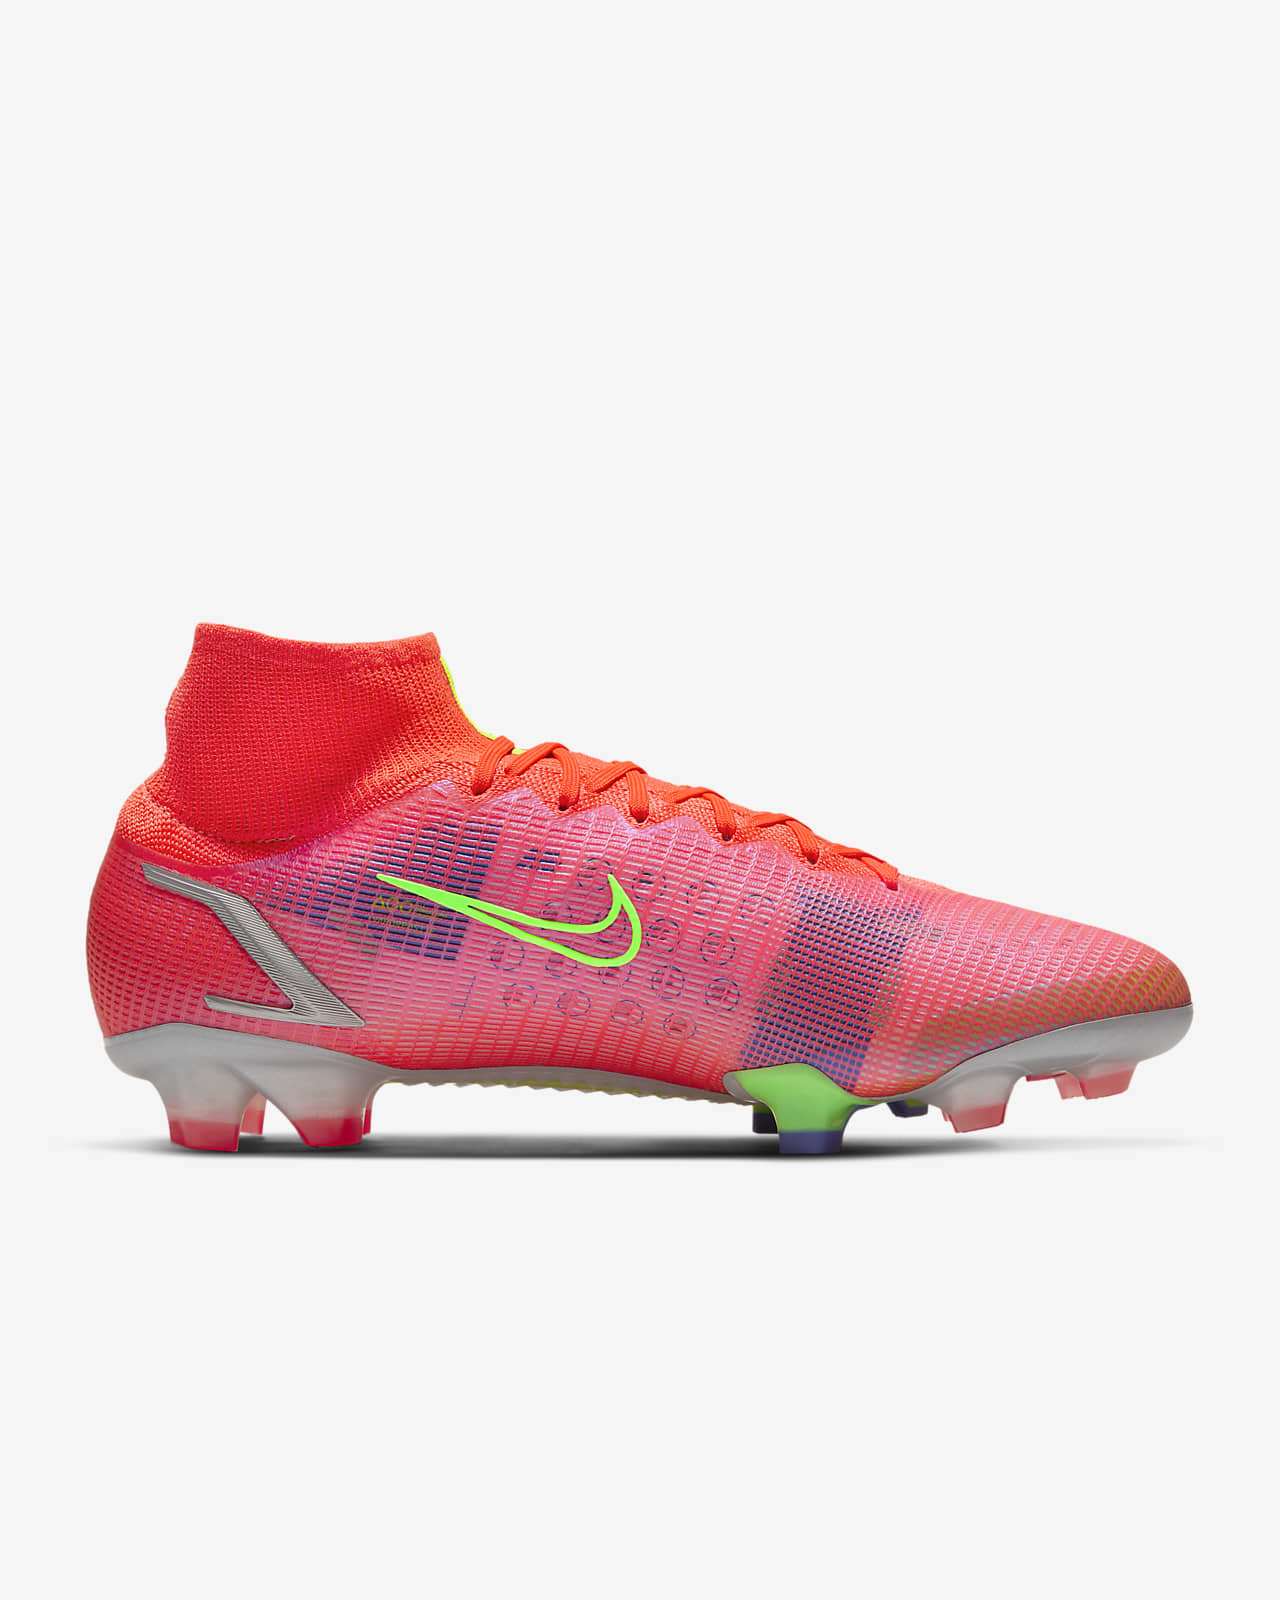 Nike Mercurial Superfly 8 Elite FG Firm-Ground Football Boot